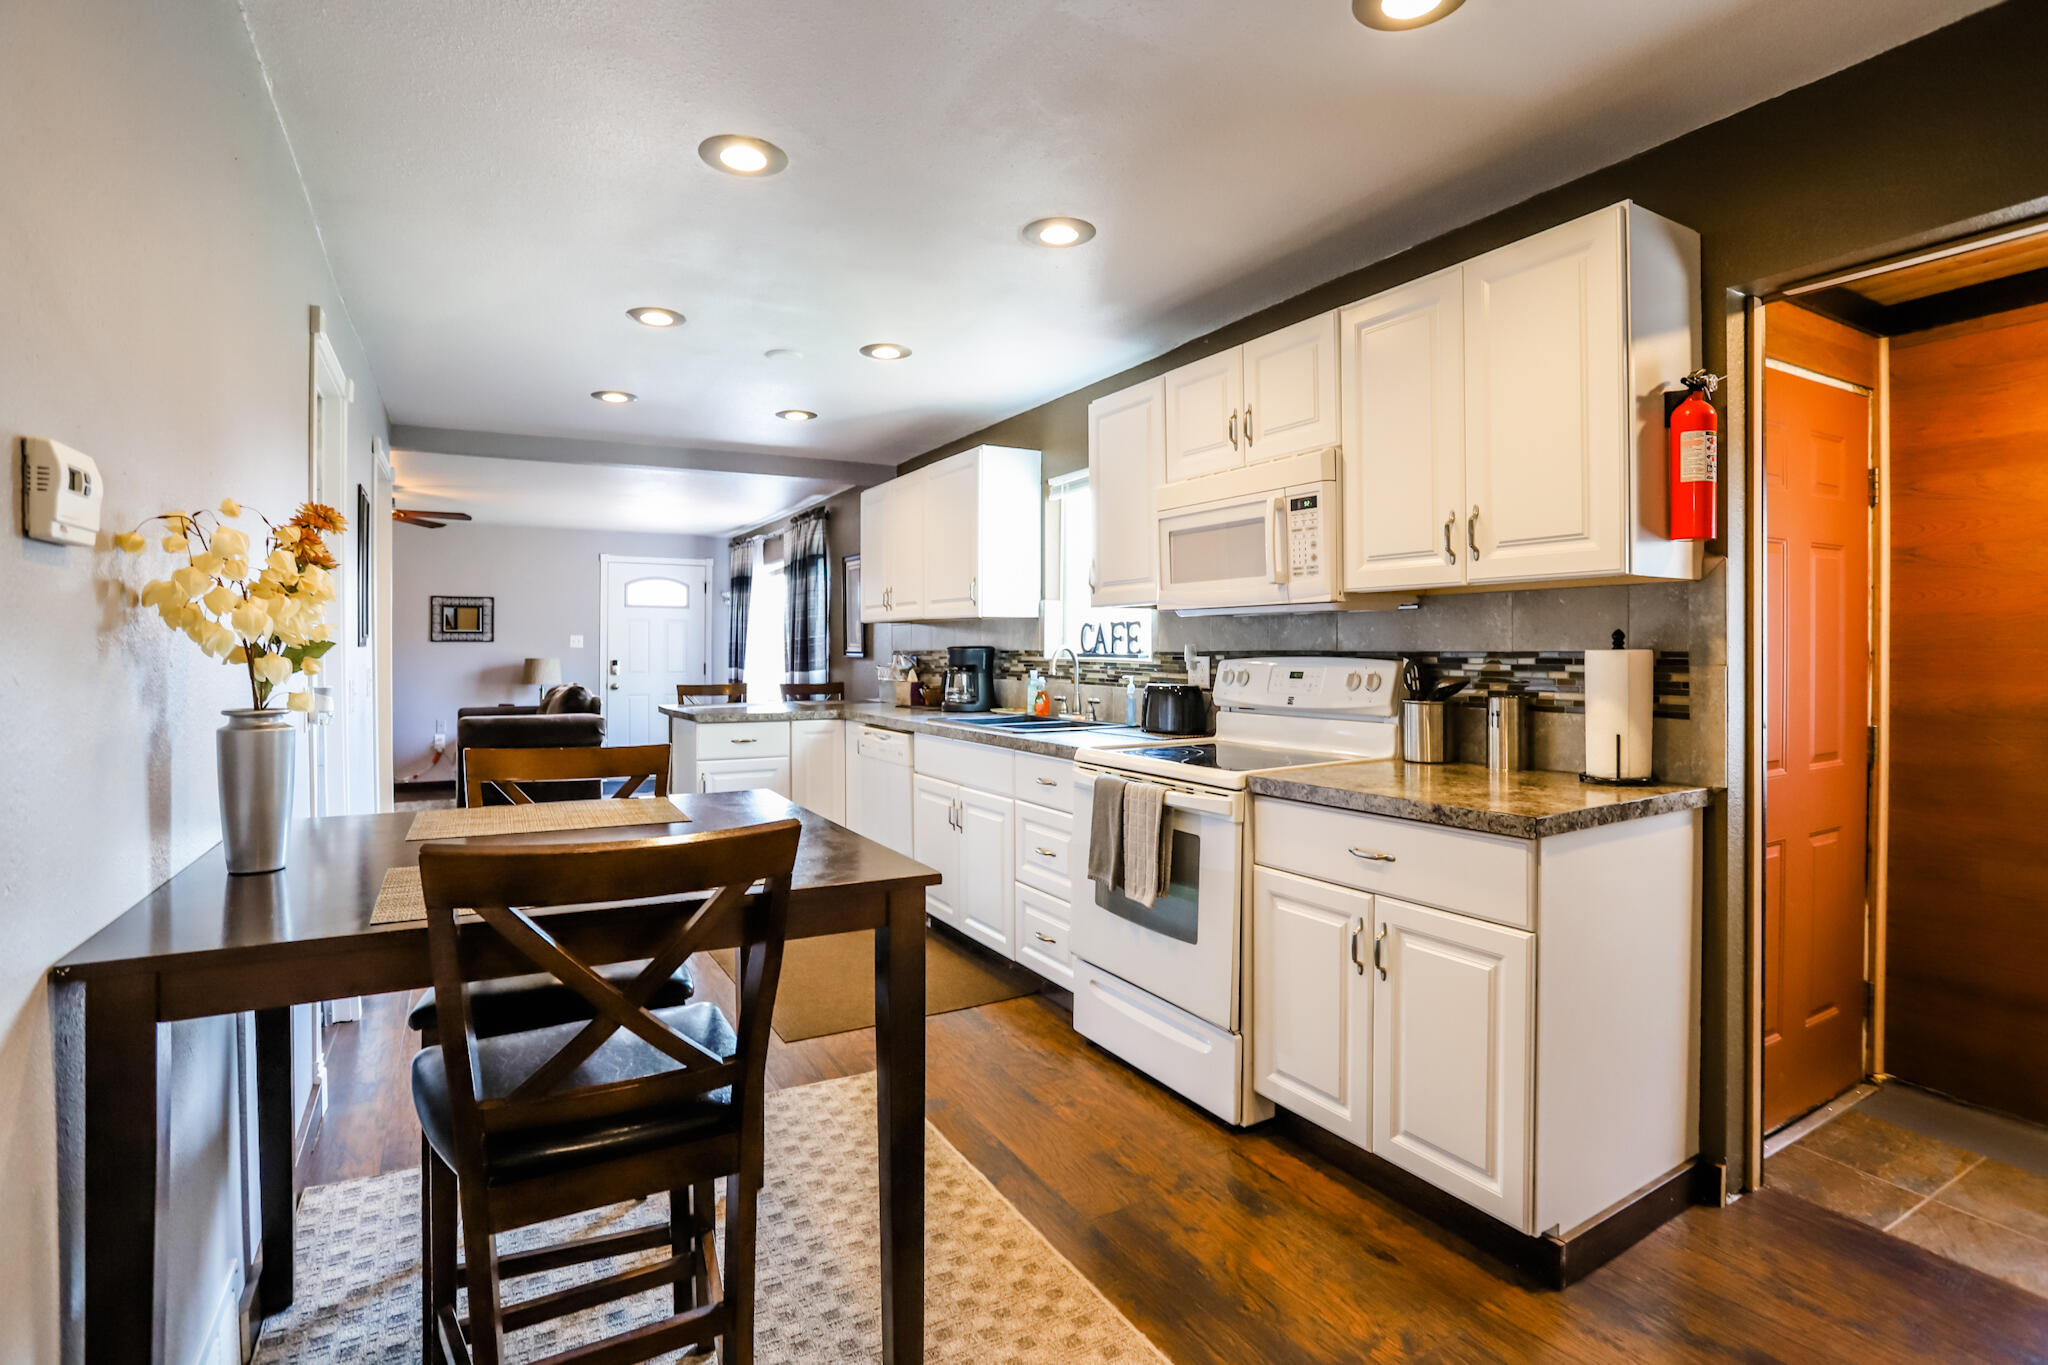 This beautifully renovated, open concept, two bedroom house is full of potential.  Last year it served as a short term rental from July 2020 to July 2021 and grossed $18,000. All this during covid. Whether you are in search of a home in need of little to no renovating, or you are interested in a turn key rental property, this house provides just that.  With a large yard, patio area, spacious kitchen and nicely updated bathrooms this home has a lot to offer.